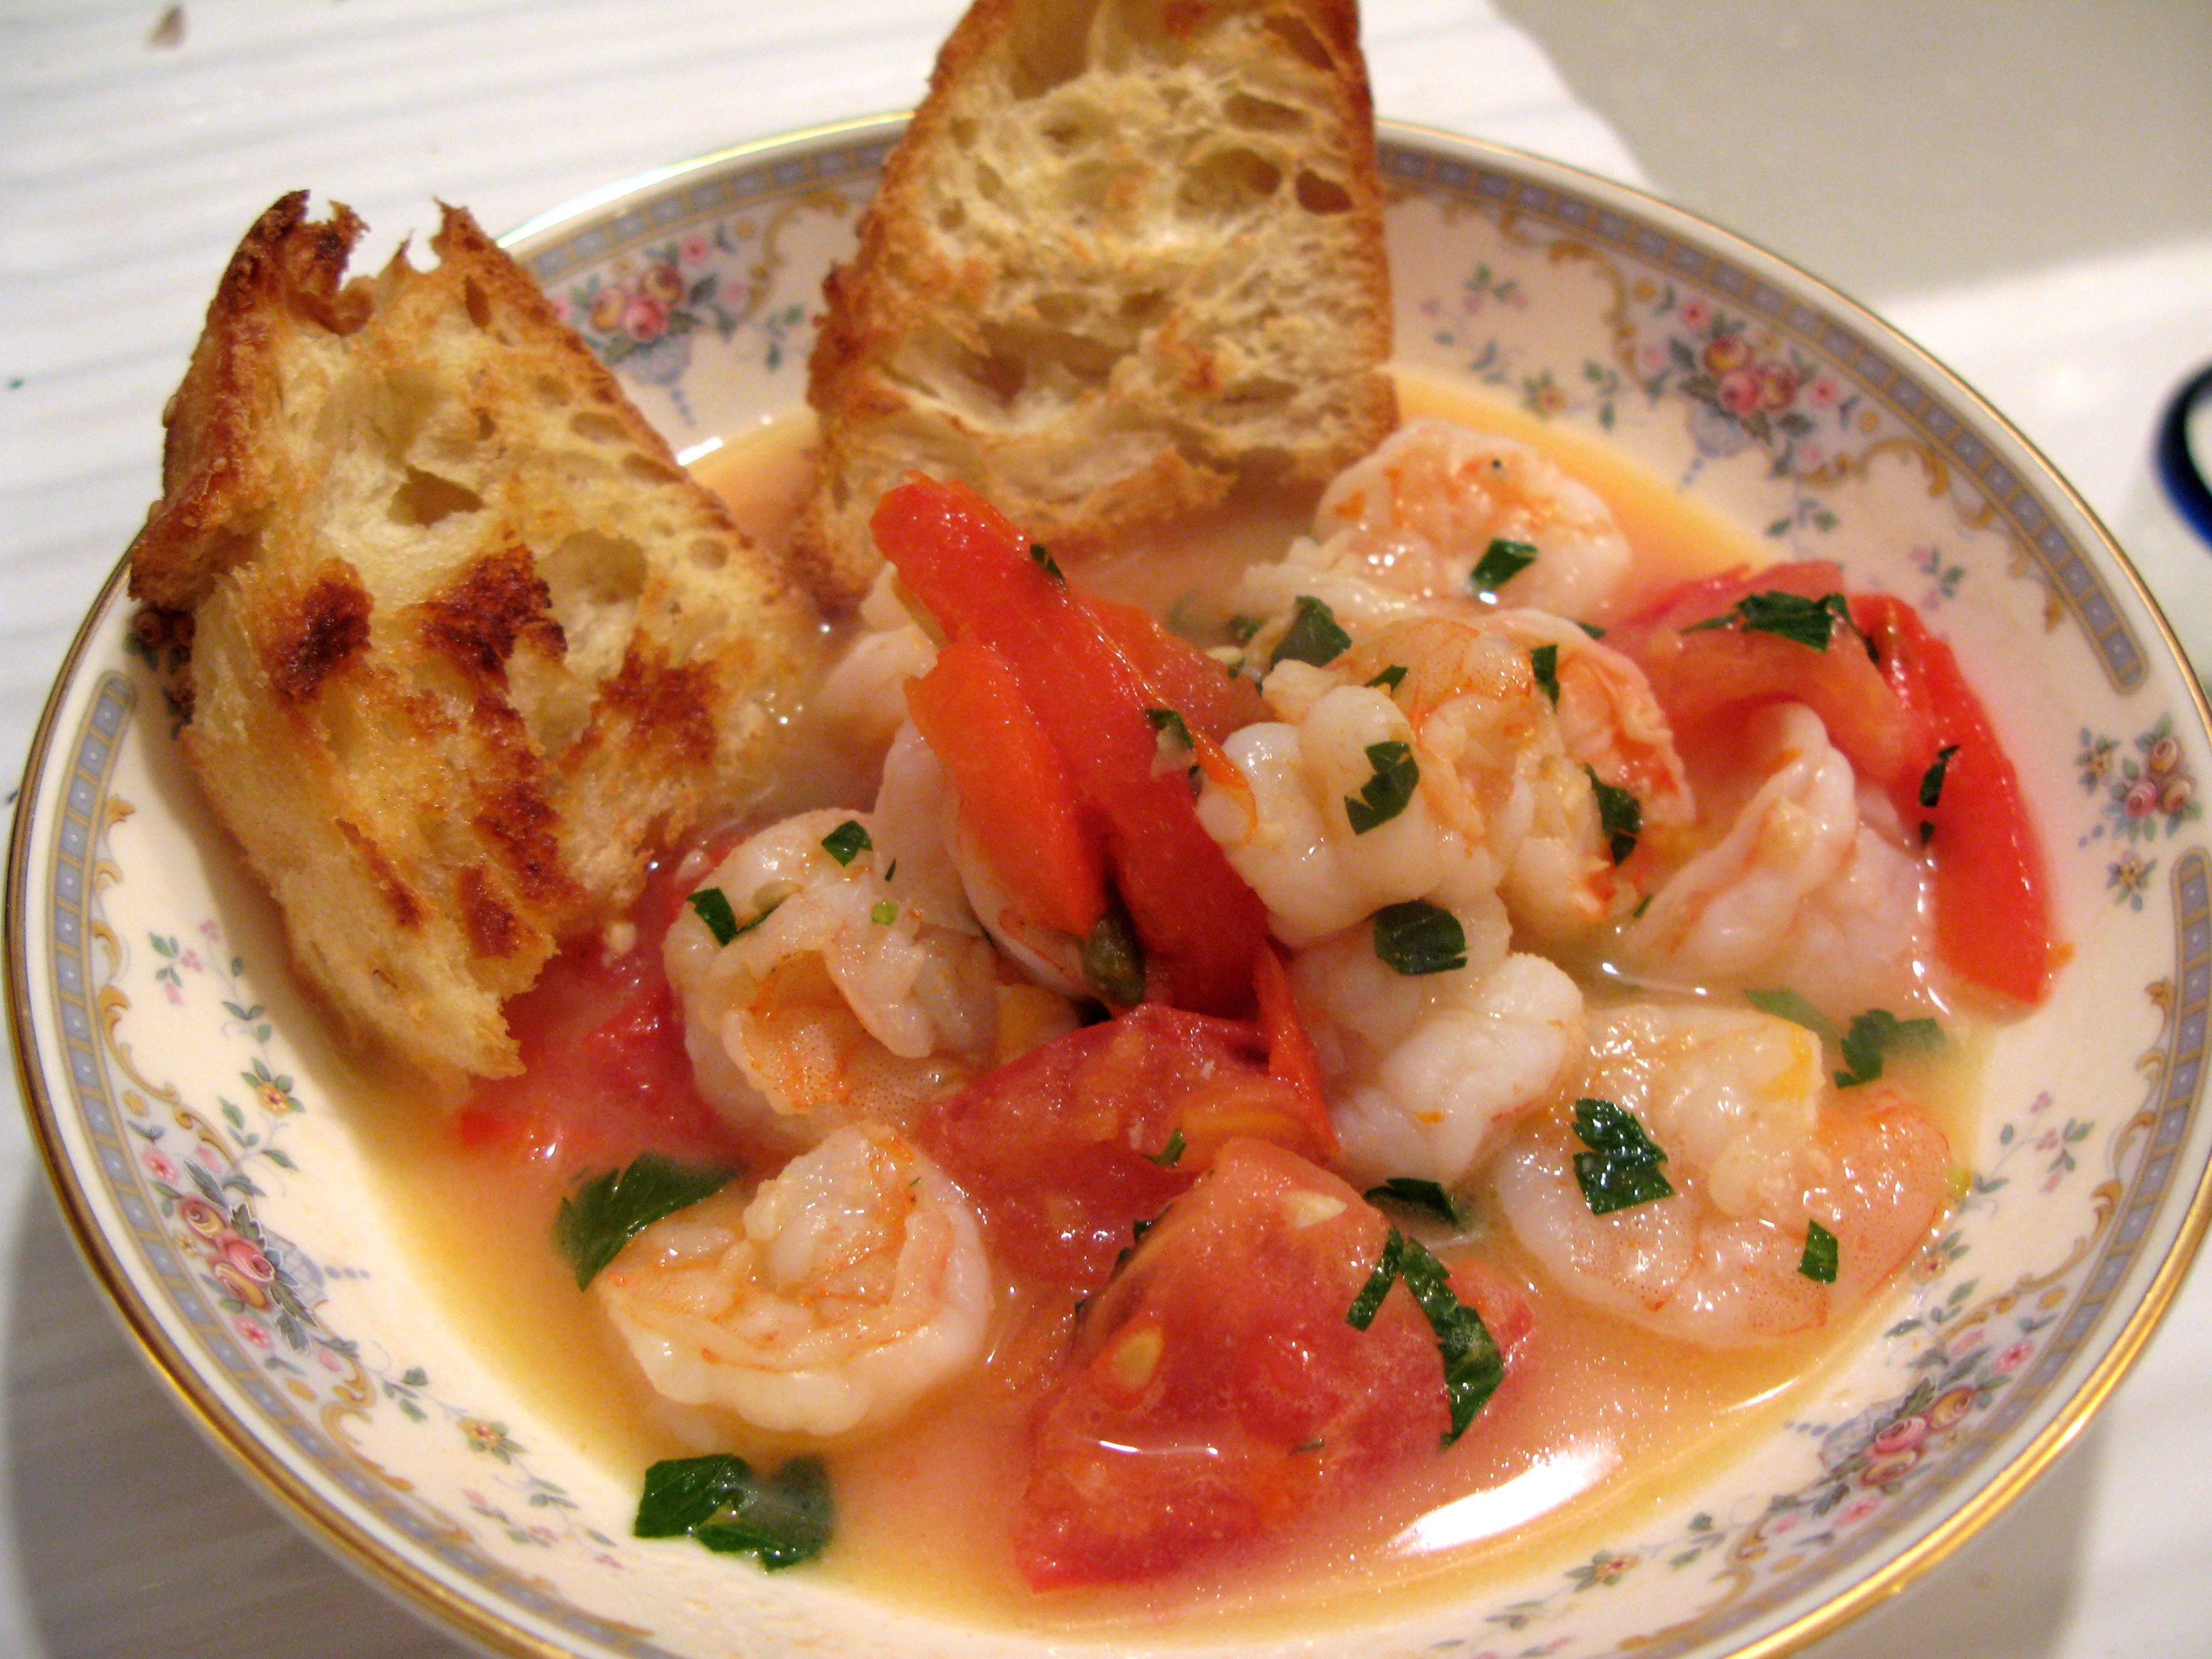 Here is the Roasted Pepper Shrimp Saute I made with a recipe from Joshua's Restaurant.